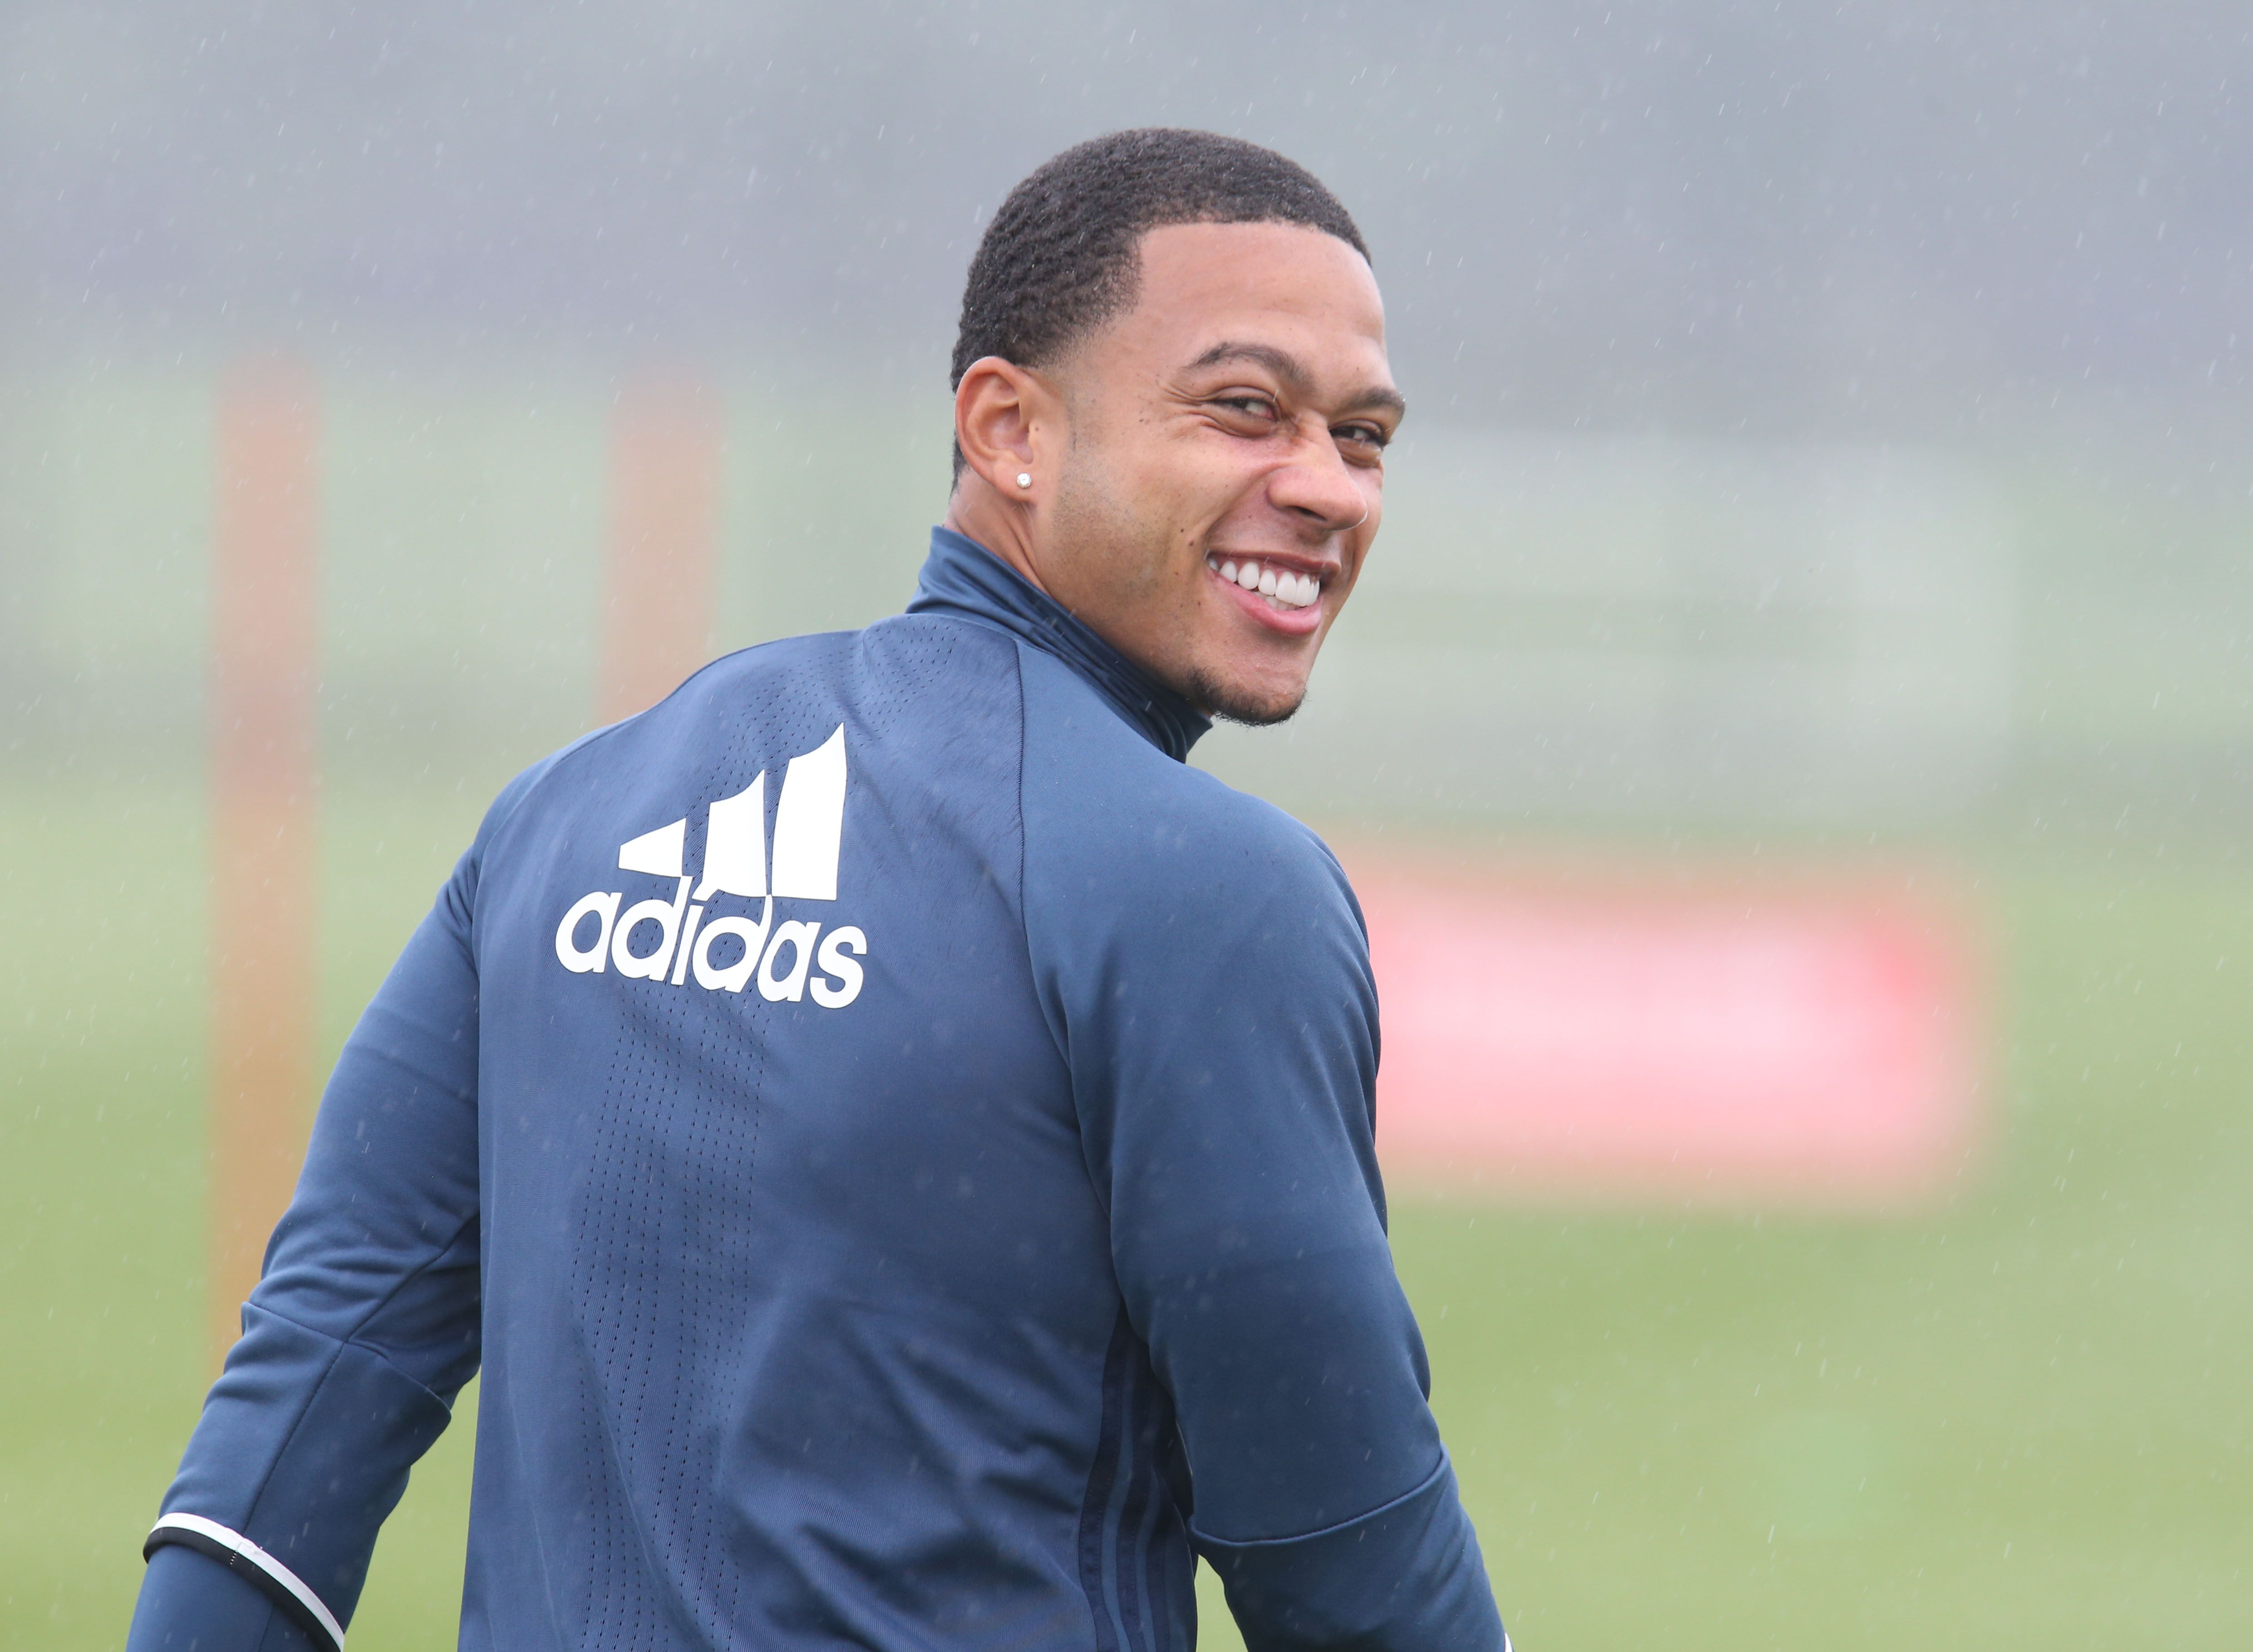 Manchester United legend Patrice Evra could be set to follow Memphis Depay to Lyon